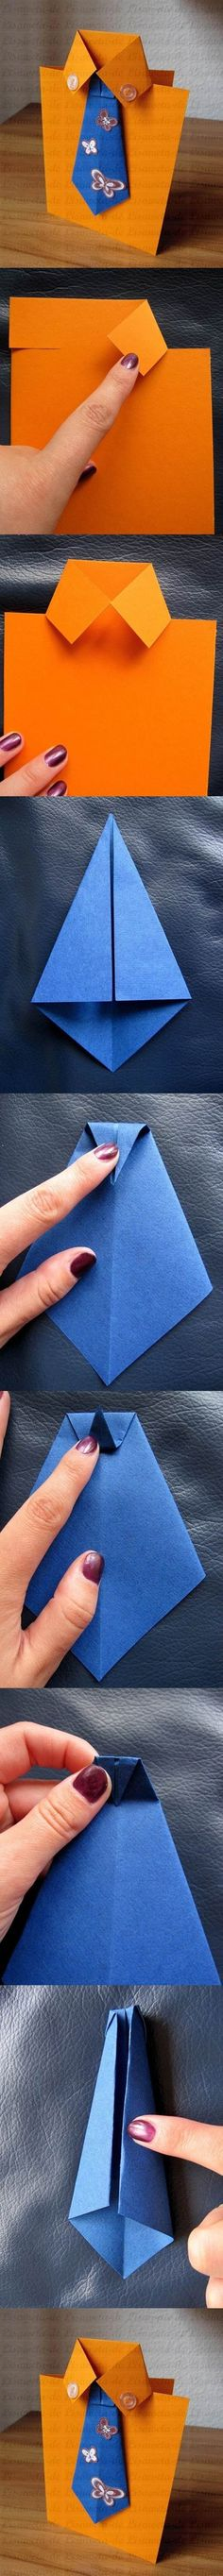 Fathers Day Card Idea: How to make a shirt and tie greeting card cool shirt diy tie diy crafts do it yourself diy projects greeting card Easy Diy Crafts, Crafts For Kids, Arts And Crafts, Paper Crafts, Card Crafts, Craft Kids, Diy Father's Day Cards, Diy Cards For Dad, Men's Cards